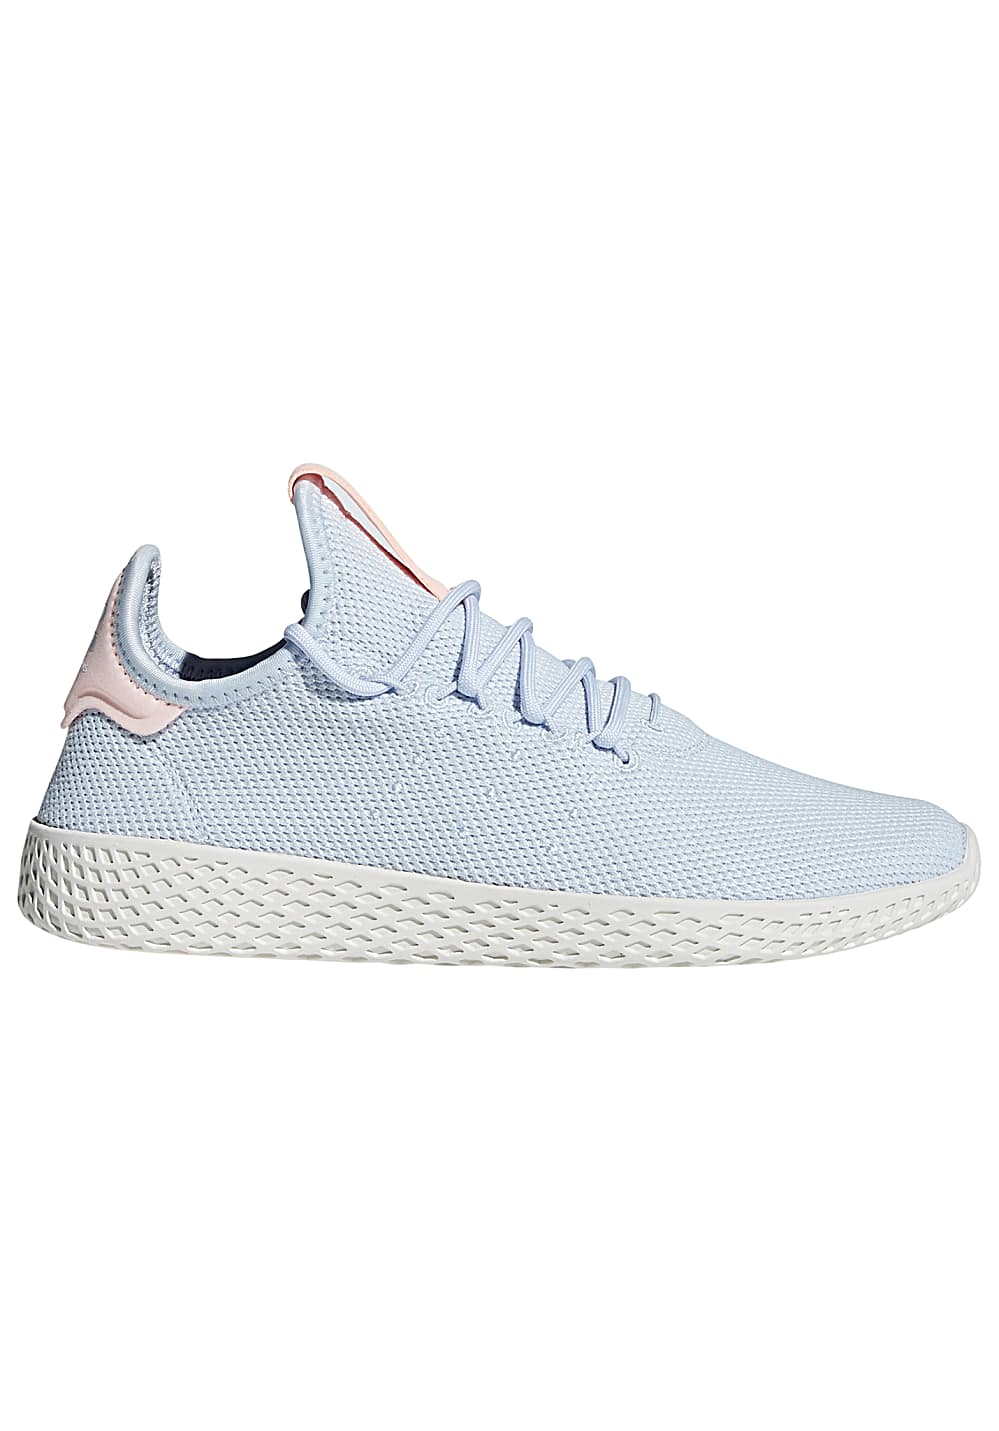 adidas Originals Pharrell Williams Tennis Hu - Sneaker für Damen - Blau